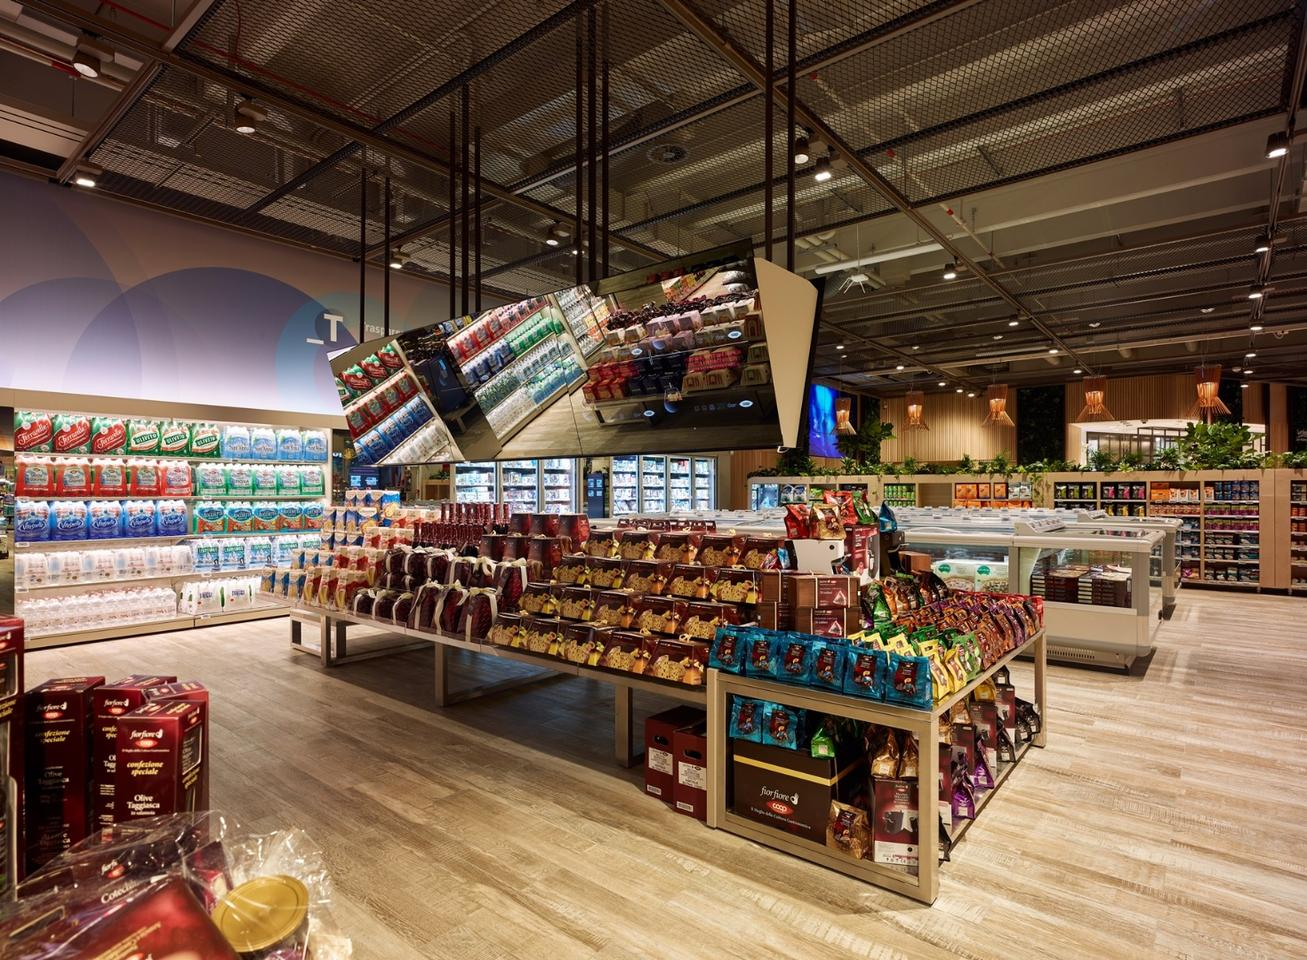 The Supermarket of the Future uses interactive tables to display useful information onmore than 6,000 products